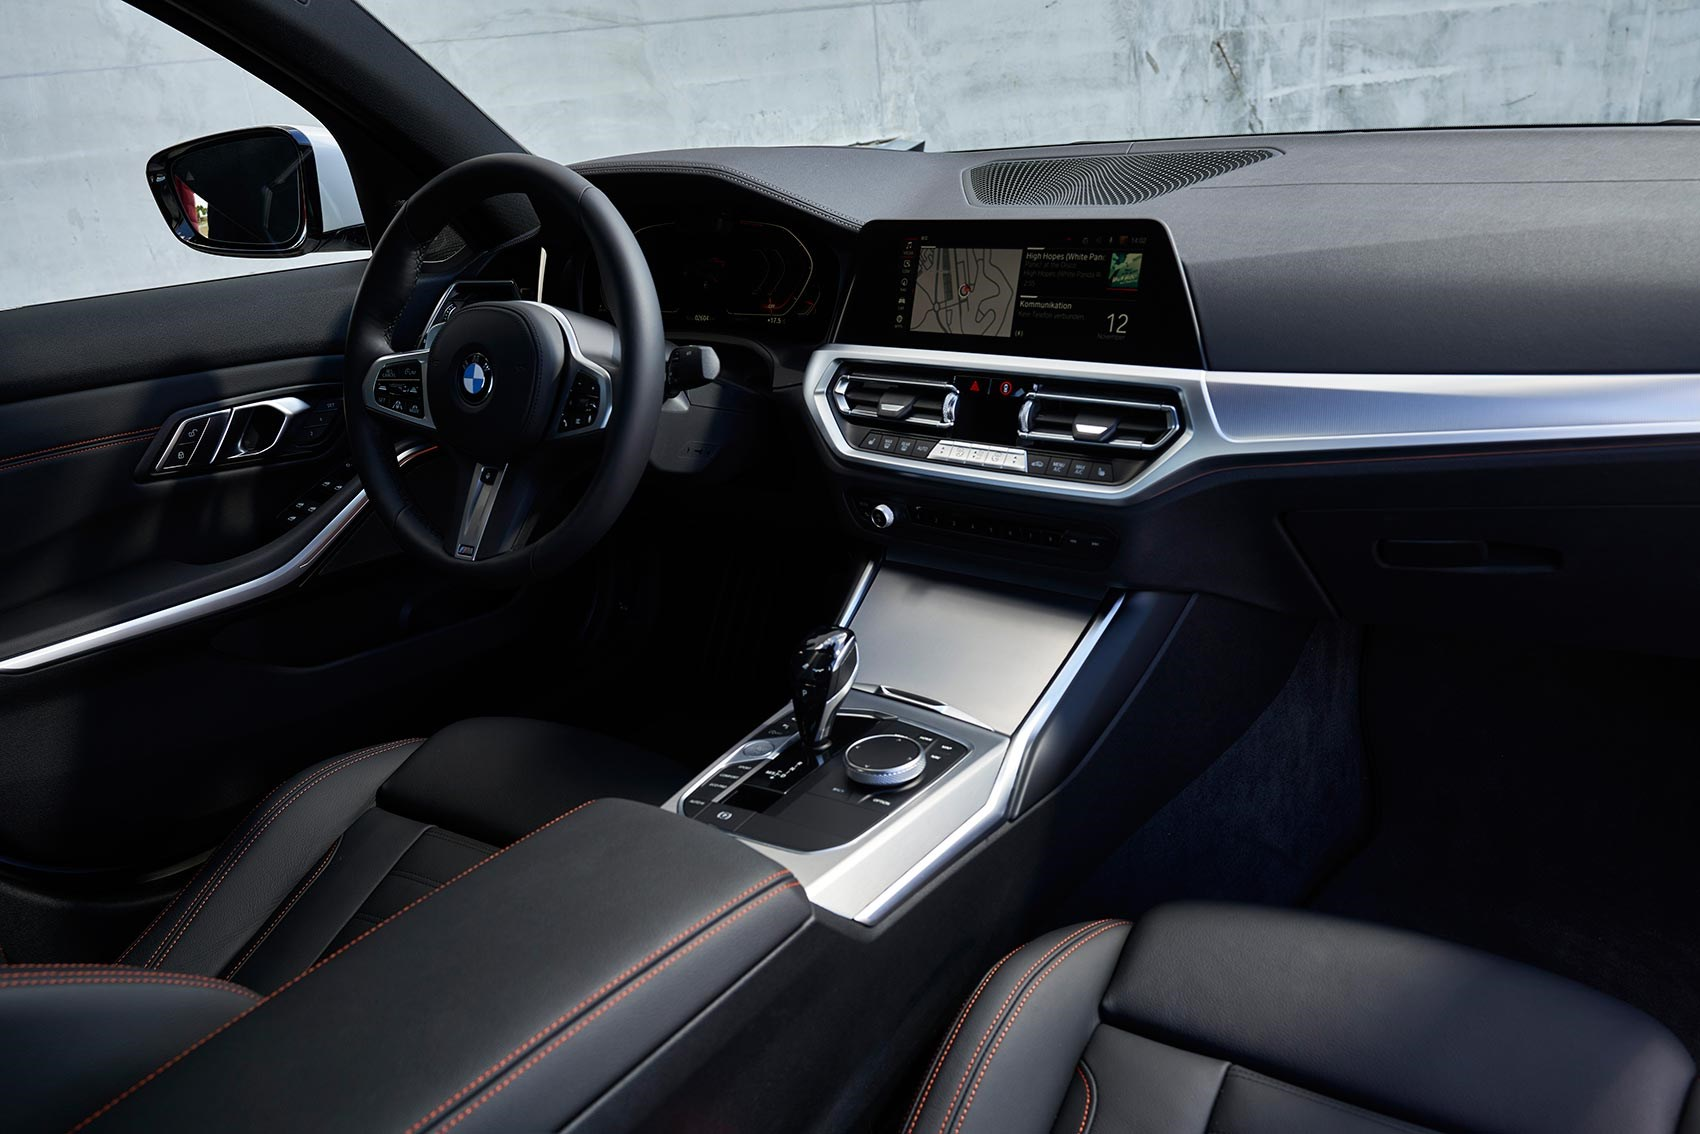 BMW 3-series interior and cabin